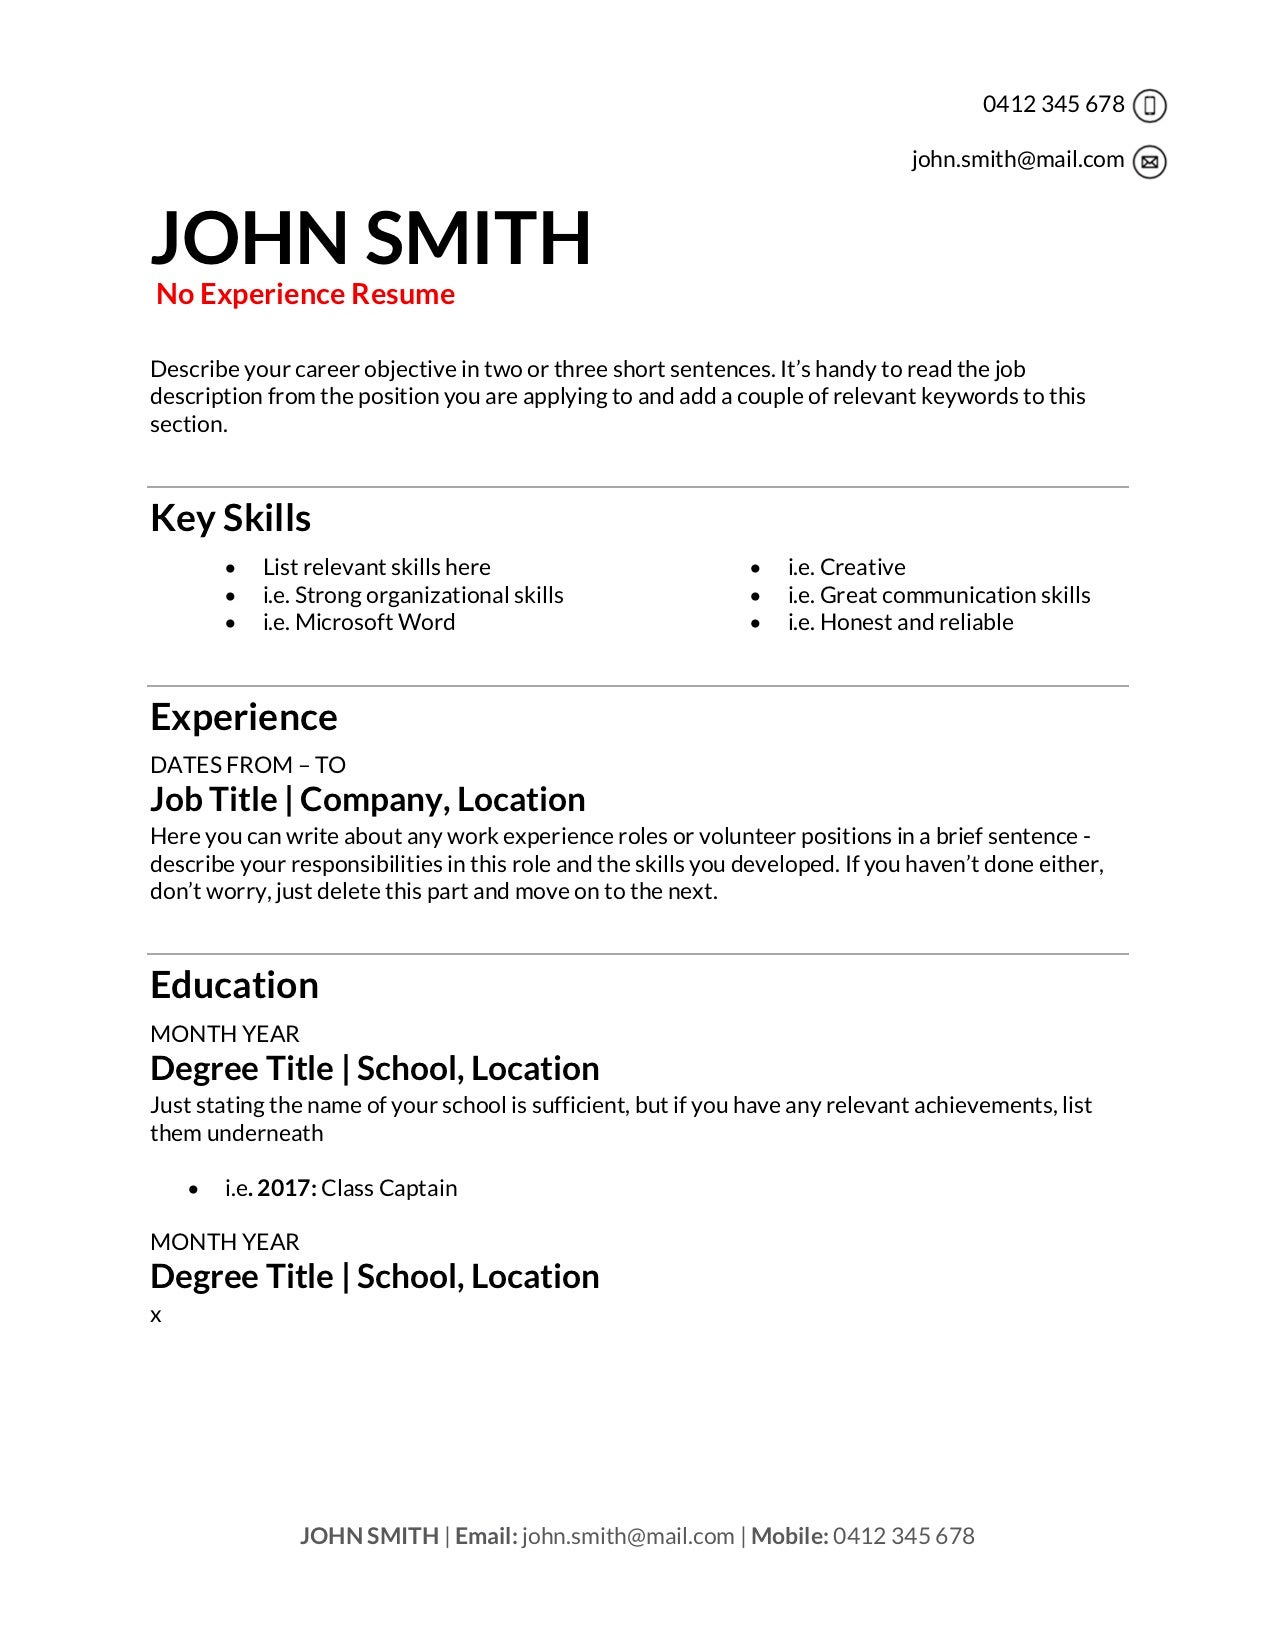 free resume templates to write in training au for retail job with no experience social Resume Resume For Retail Job With No Experience